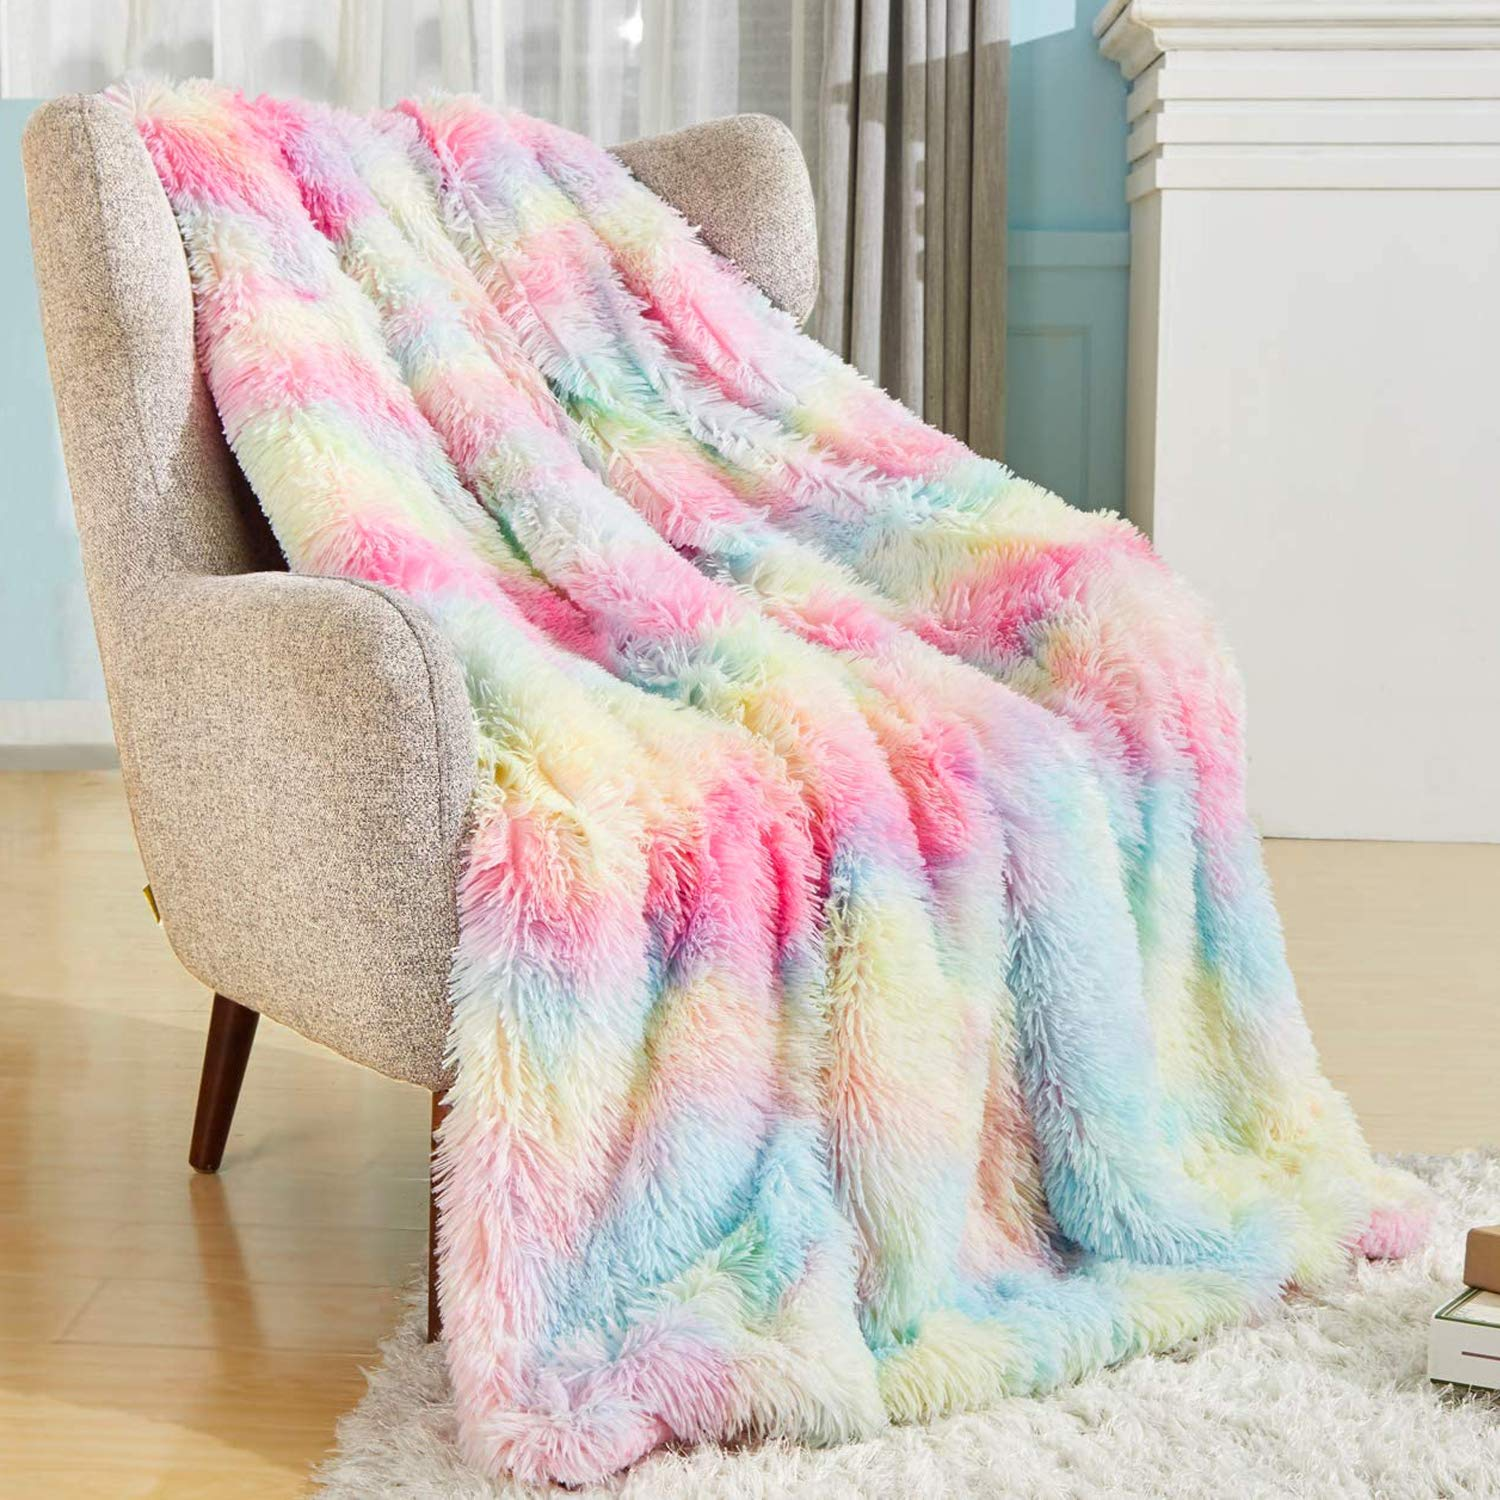 """Bobor Shaggy Longfur Faux Fur Throw Blanket, Super Soft Fuzzy Sherpa Fleece Microfiber Blanket, Cozy Plush Reversible Blanket for Couch Bed Chair Birthday Party Photo Props (Rainbow, 51""""x63"""")"""